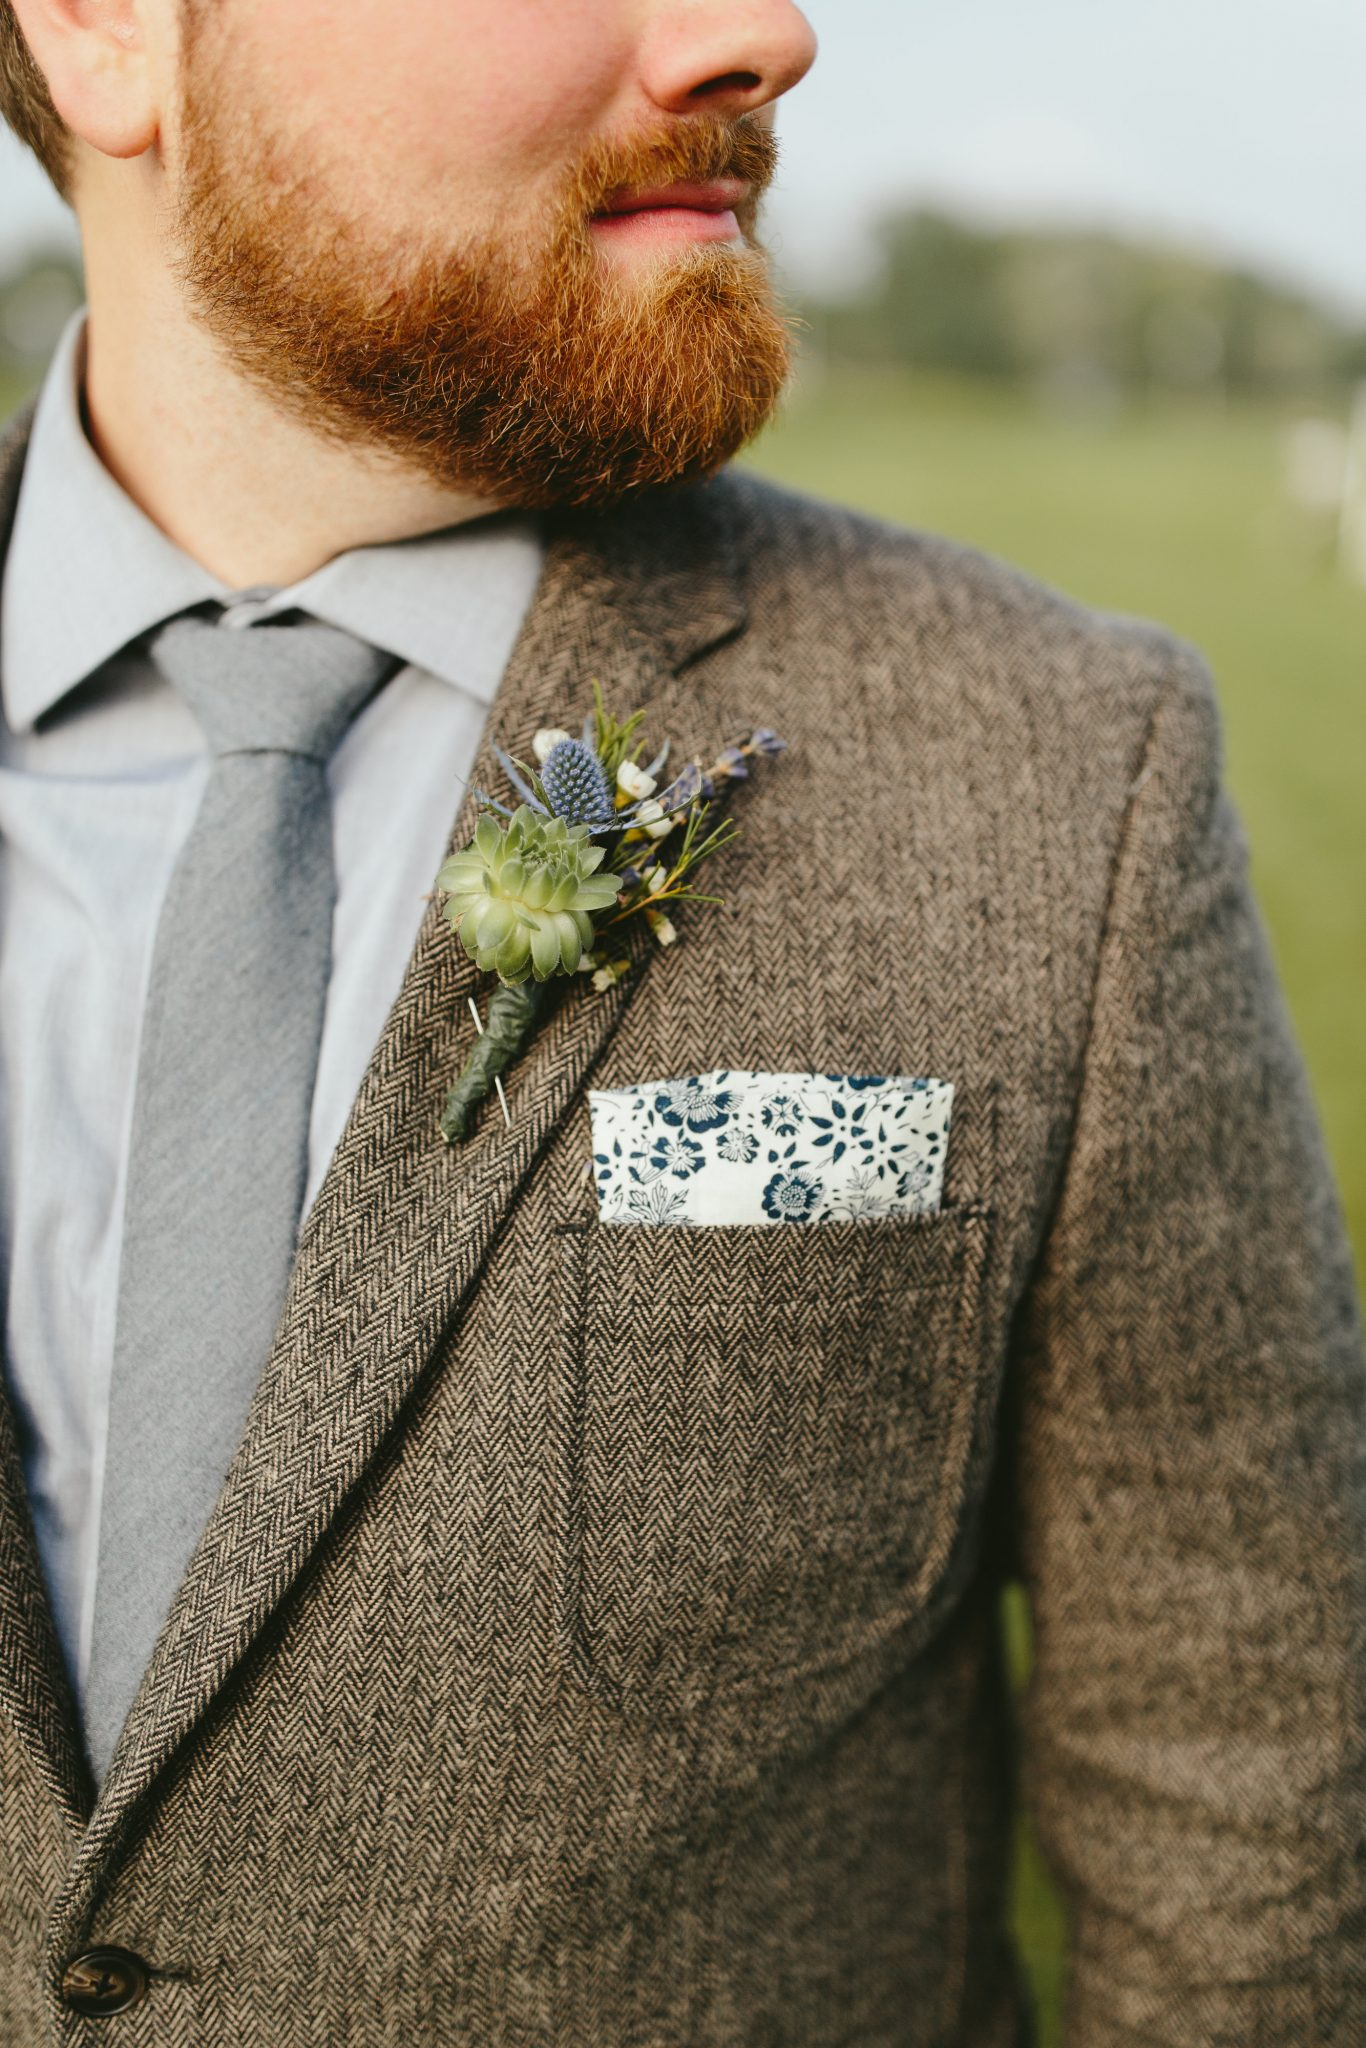 grooms style, brown groom suit inspiration, vintage inspired grooms style, unique grooms style, unique pocket square,philadelphia documentary wedding photographer,brooklyn wedding photography, Brooklyn wedding, Philadelphia wedding photographer, Philadelphia wedding, Brooklyn new york photographer, unique wedding inspiration, fun wedding photos, romantic wedding, destination wedding photographer, wedding photography inspiration,barn wedding ideas, barn wedding, unique barn wedding inspiration